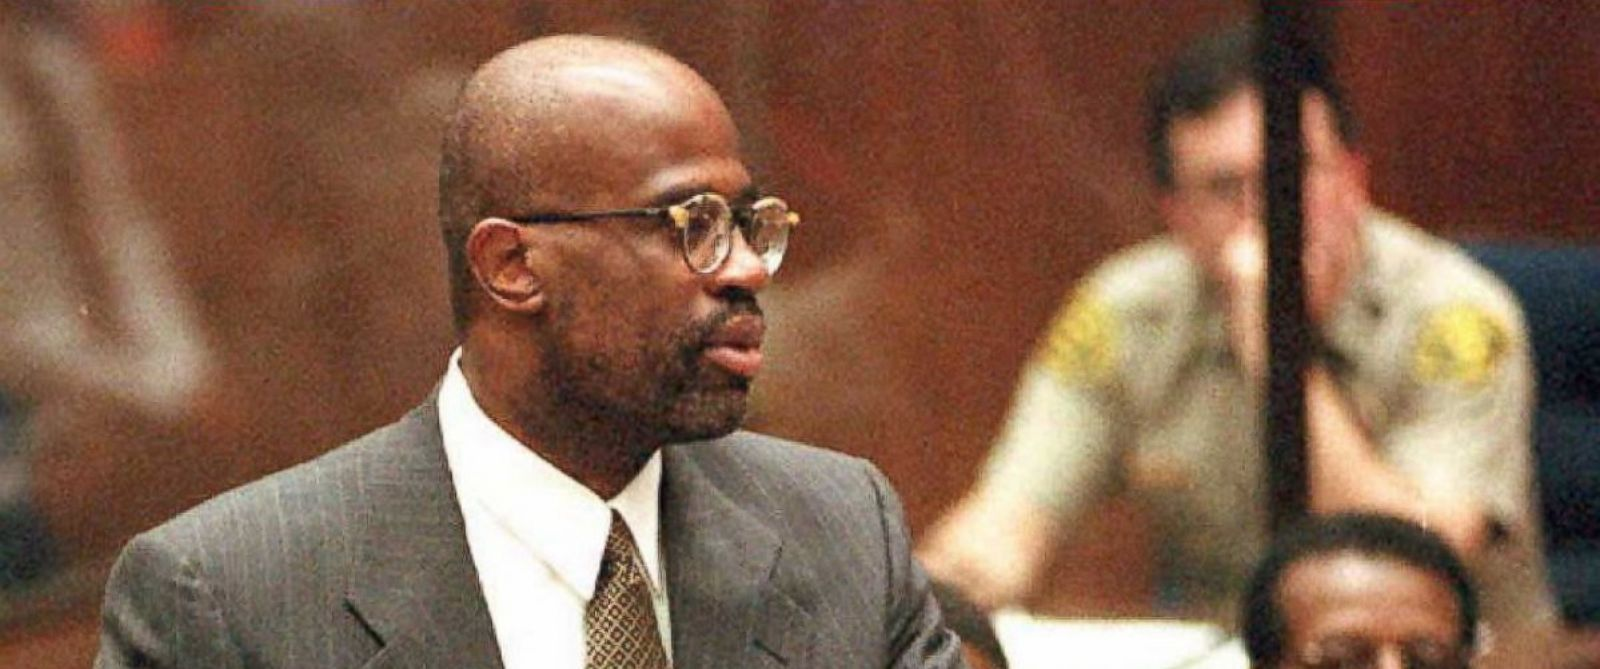 PHOTO: Prosecutor Christopher Darden apologizes to Judge Lance Ito following a contempt of court citing by the judge during a sidebar hearing, February 23, 1995, in Los Angeles.